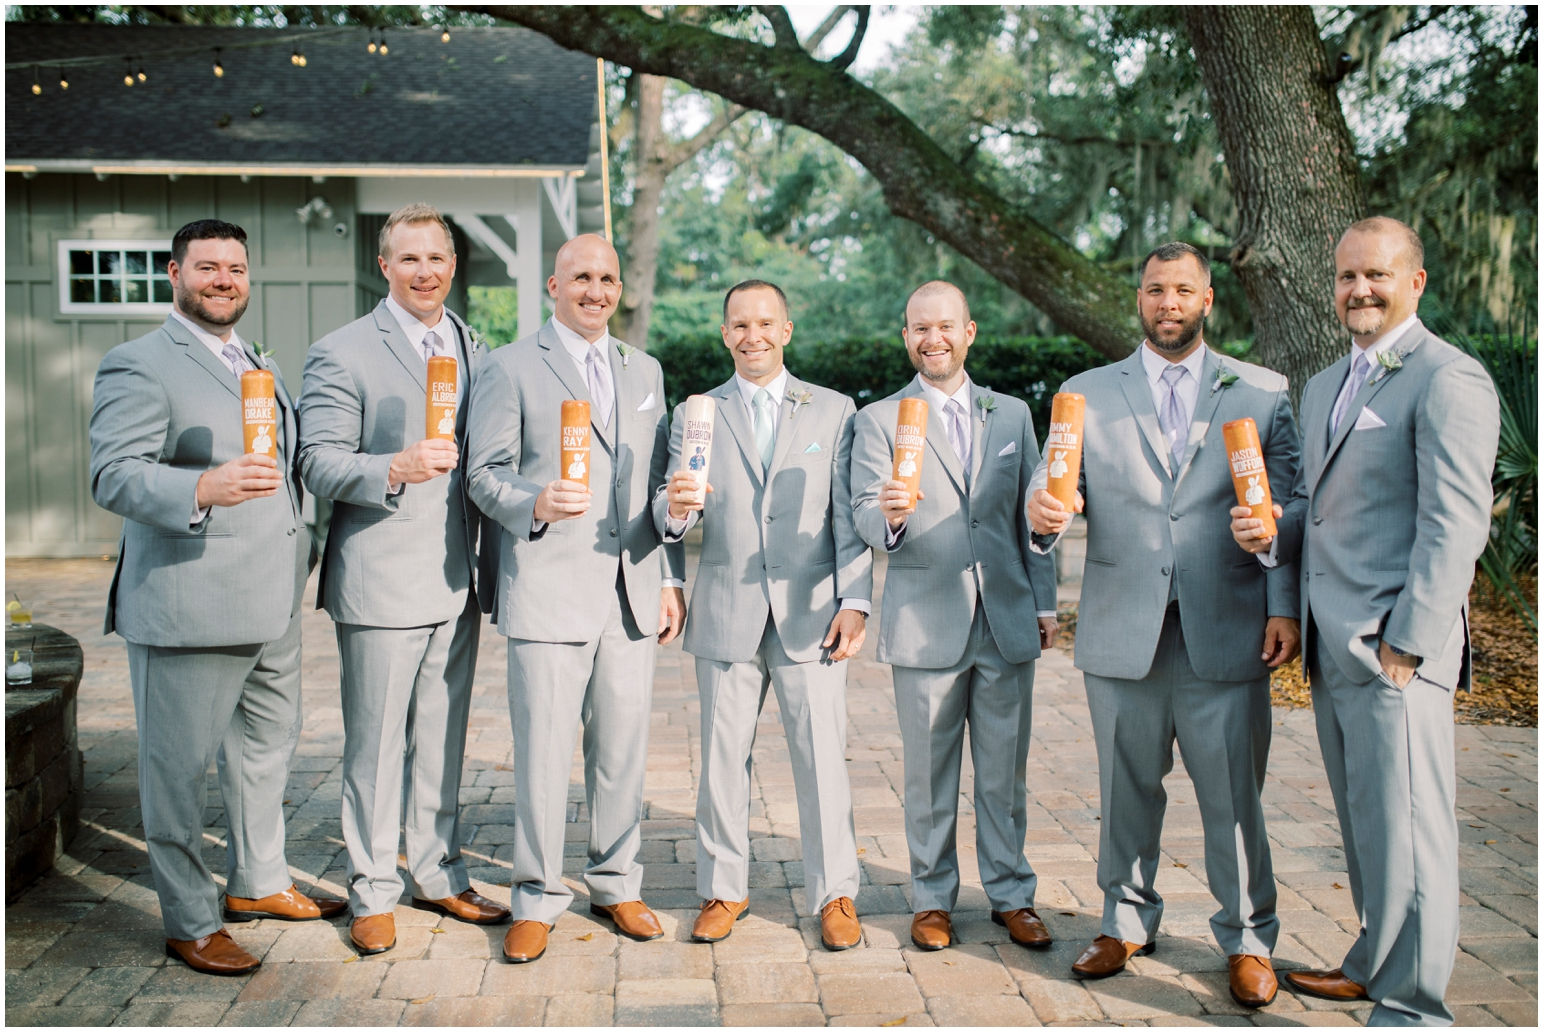 Lisa Silva Photography- Jacksonville, St Augustine, Fernandina Beach, Amelia Island, Ponte Vedra Beach, North East Florida Fine Art Film Photographer- Ashley and Shawn's wedding at bowing oaks plantation_0038.jpg